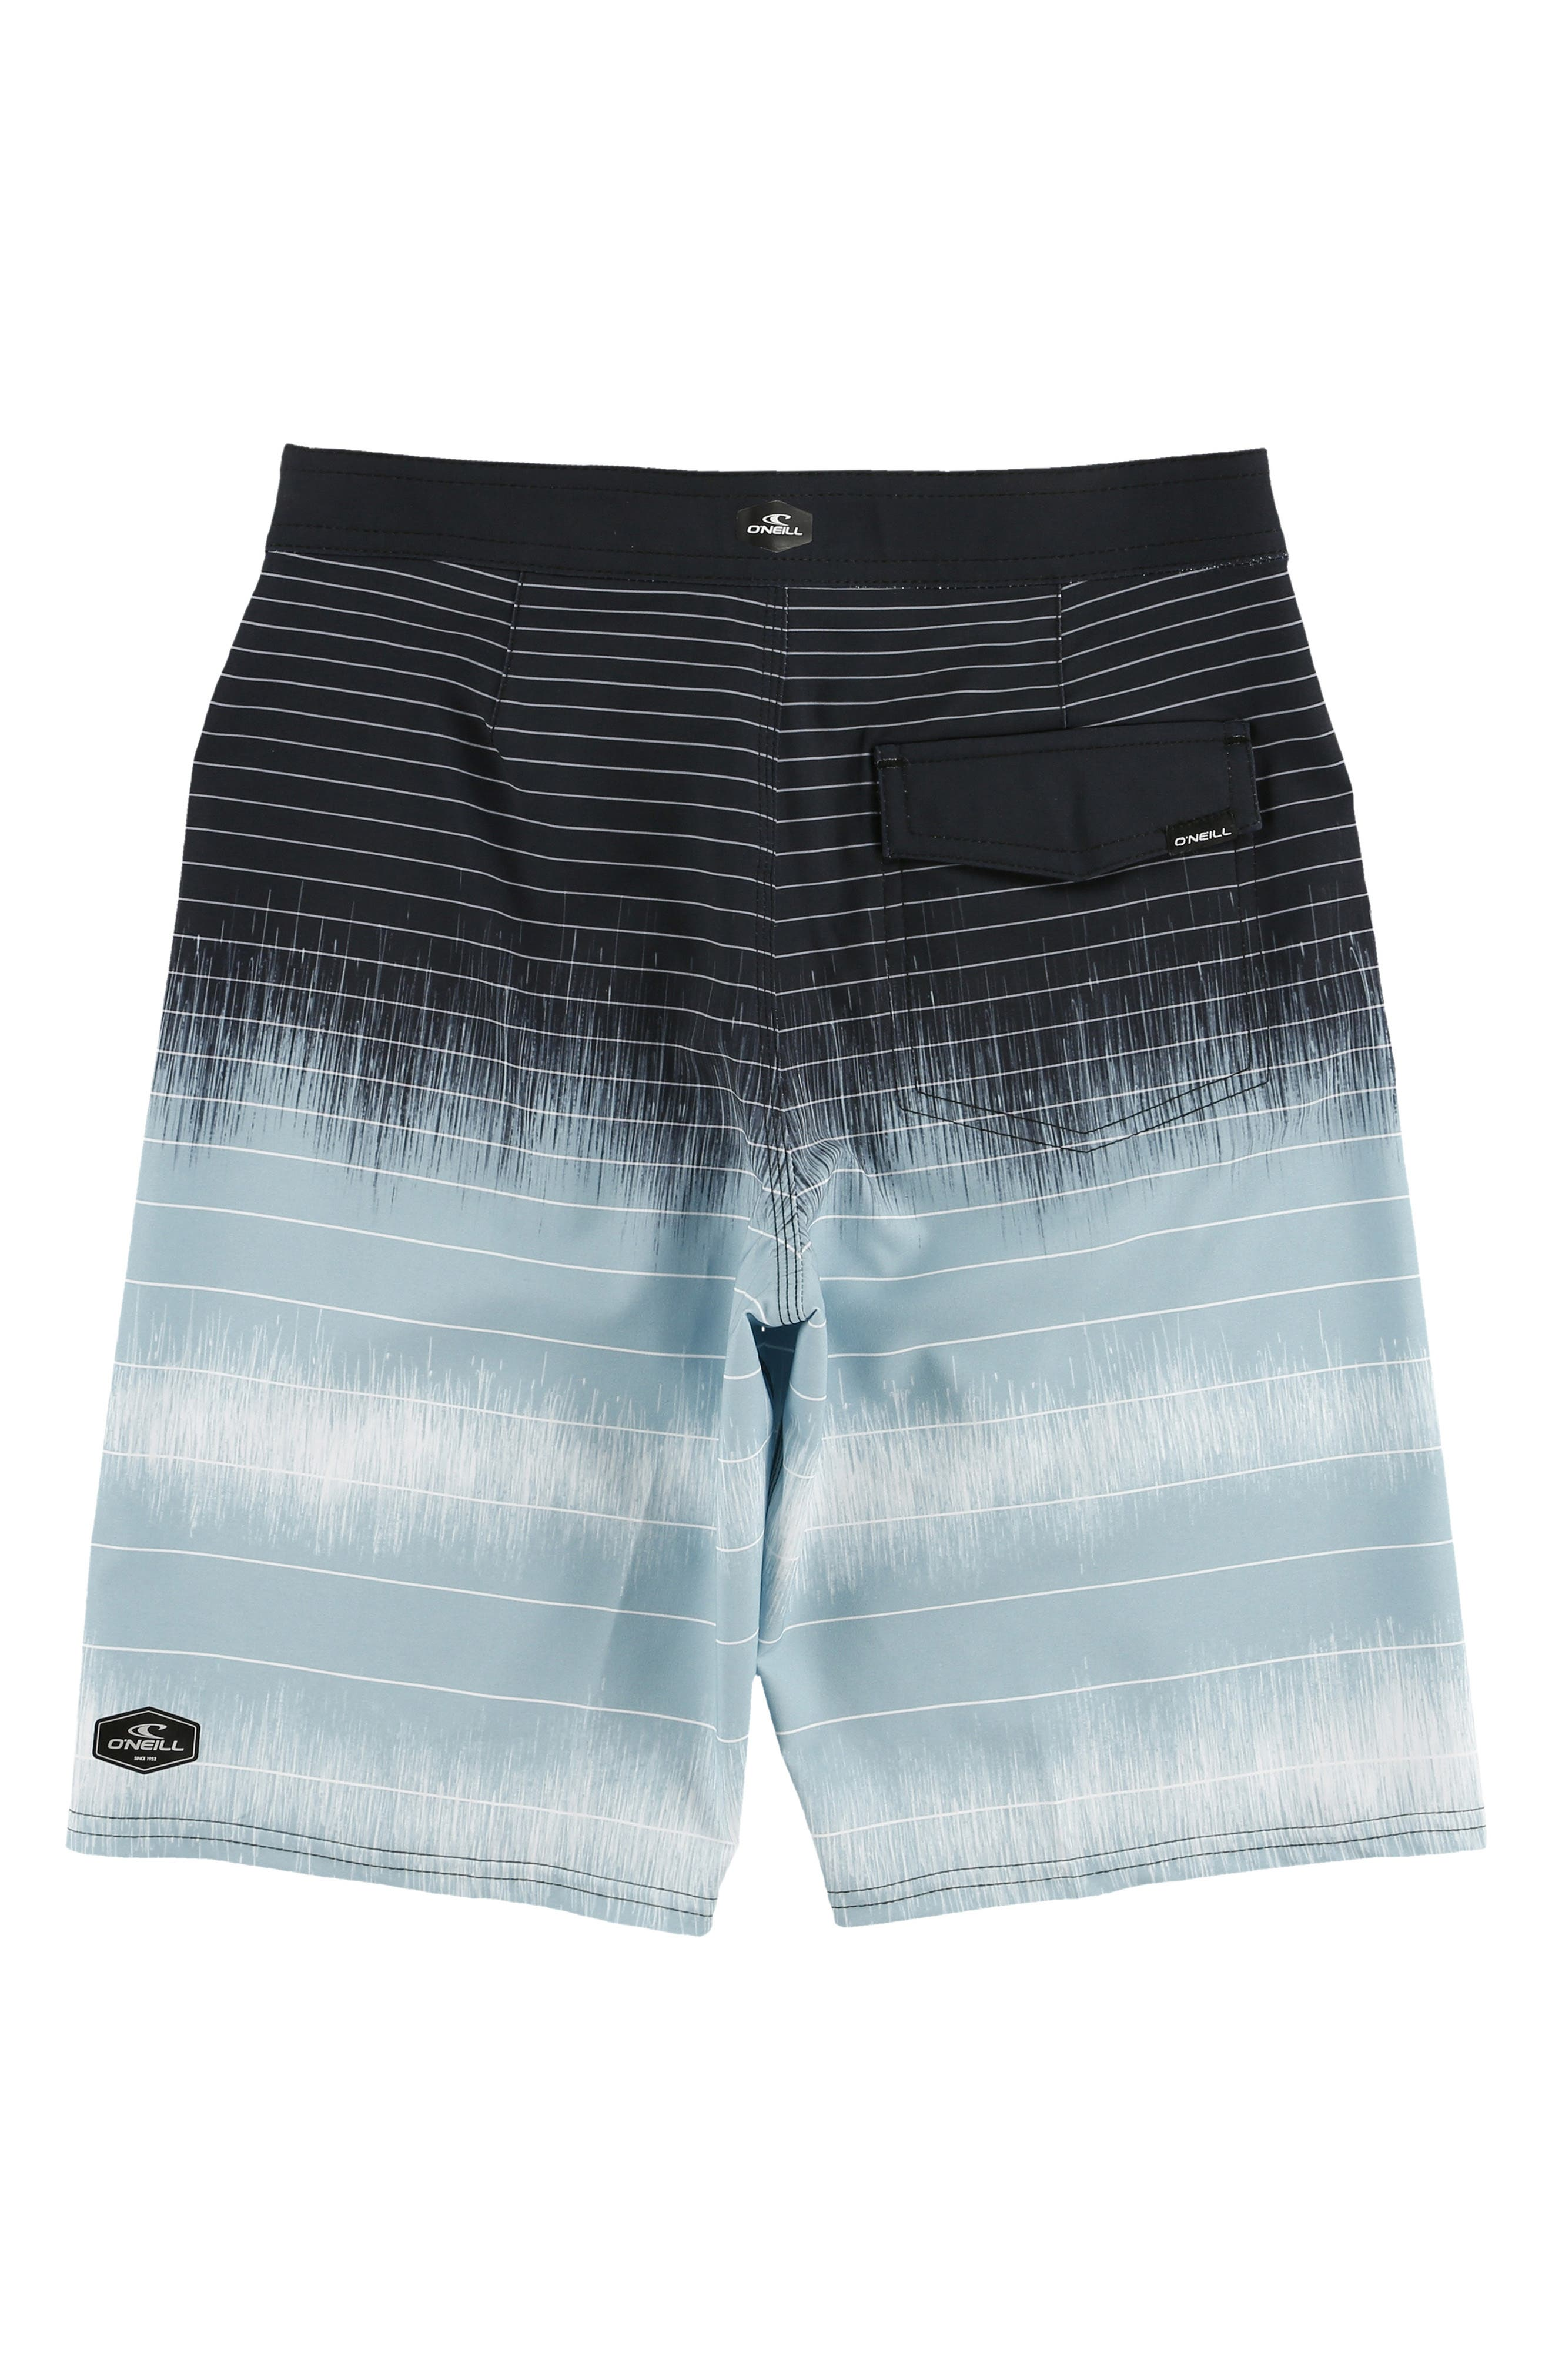 Hyperfreak Seismic Board Shorts,                             Alternate thumbnail 2, color,                             DARK NAVY